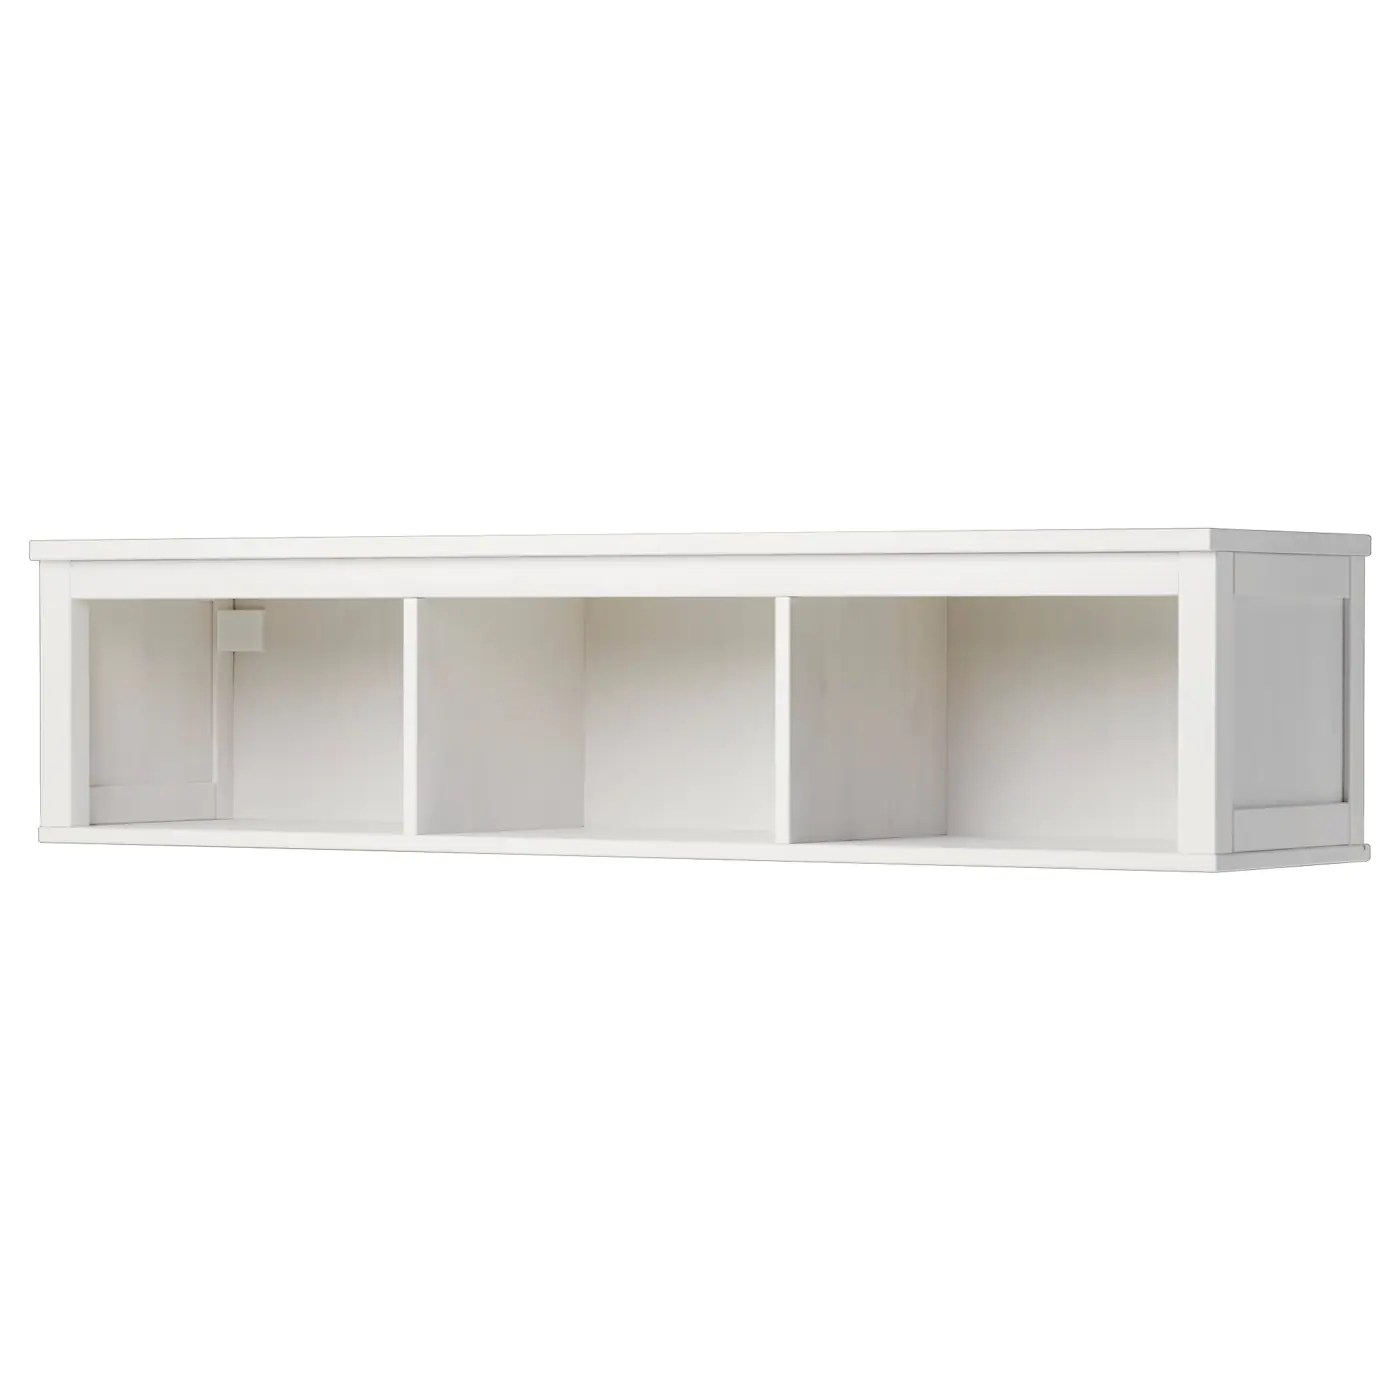 Ikea Küchenregal 20 Cm Hemnes Wall Bridging Shelf White Stain 148 X 37 Cm Ikea